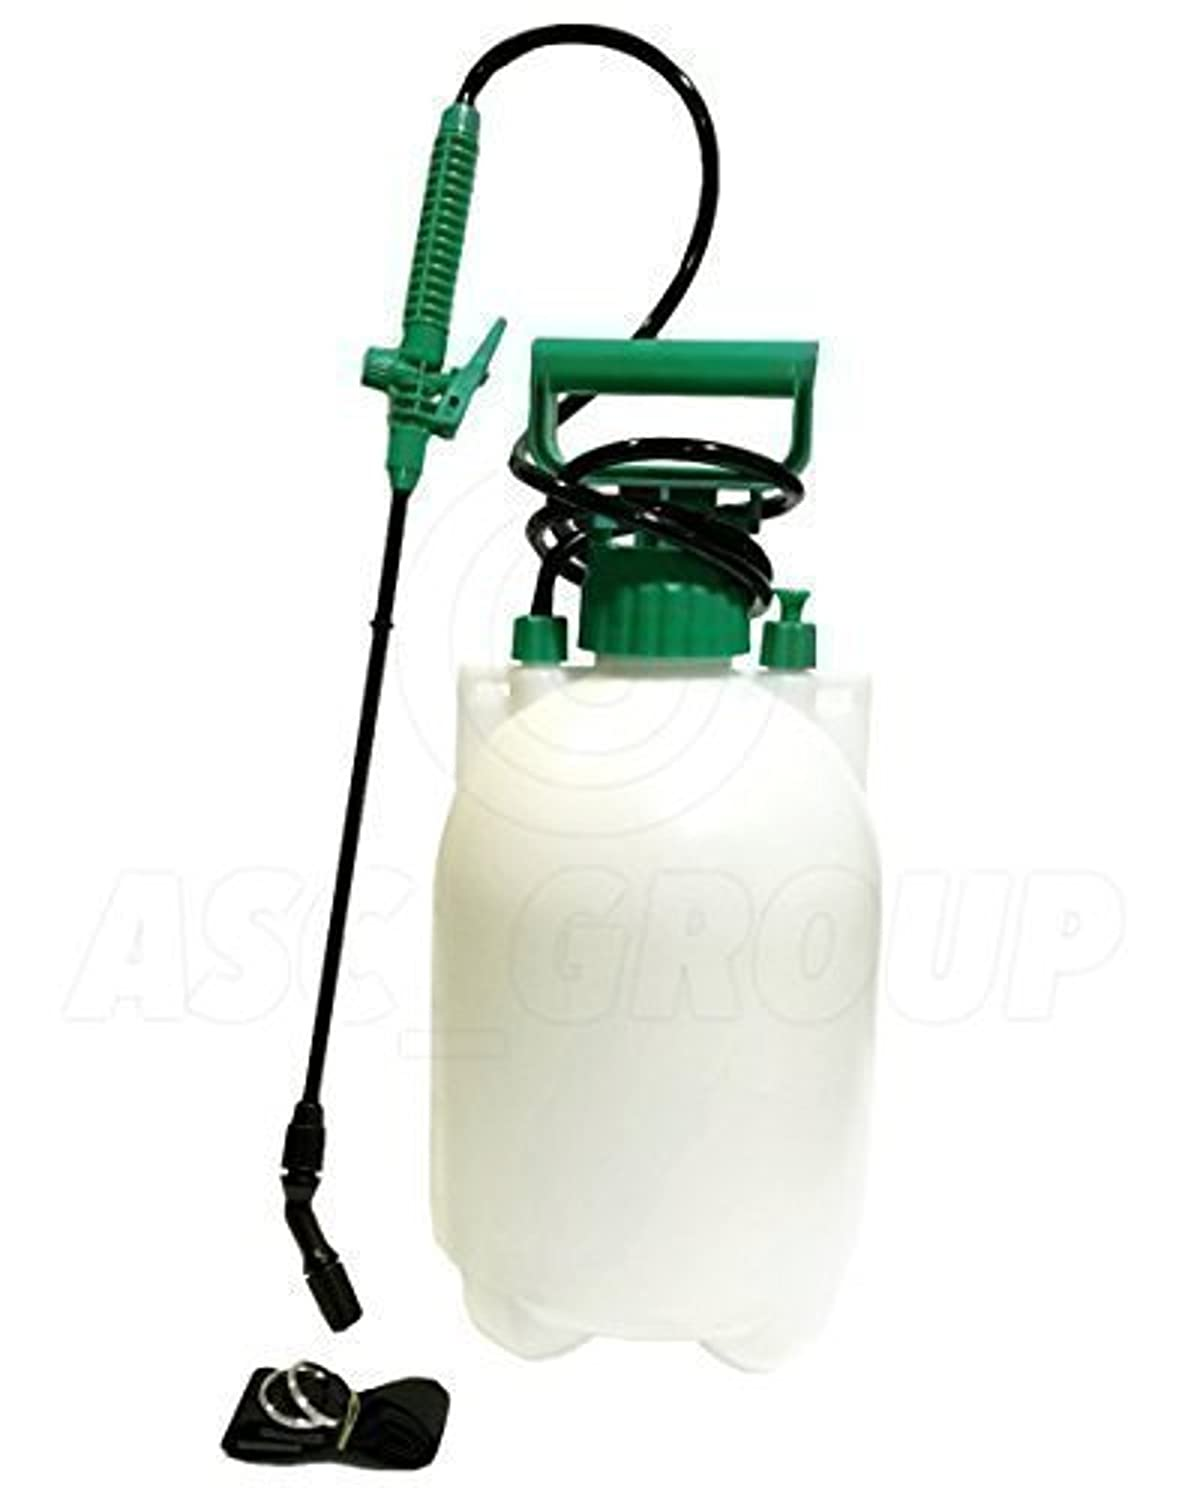 5L 5 Litre Pressure Sprayer - Knapsack, Shoulder Strap, Pump & Trigger Action - For Weed Killer/Water/Pesticides Etc. ASC